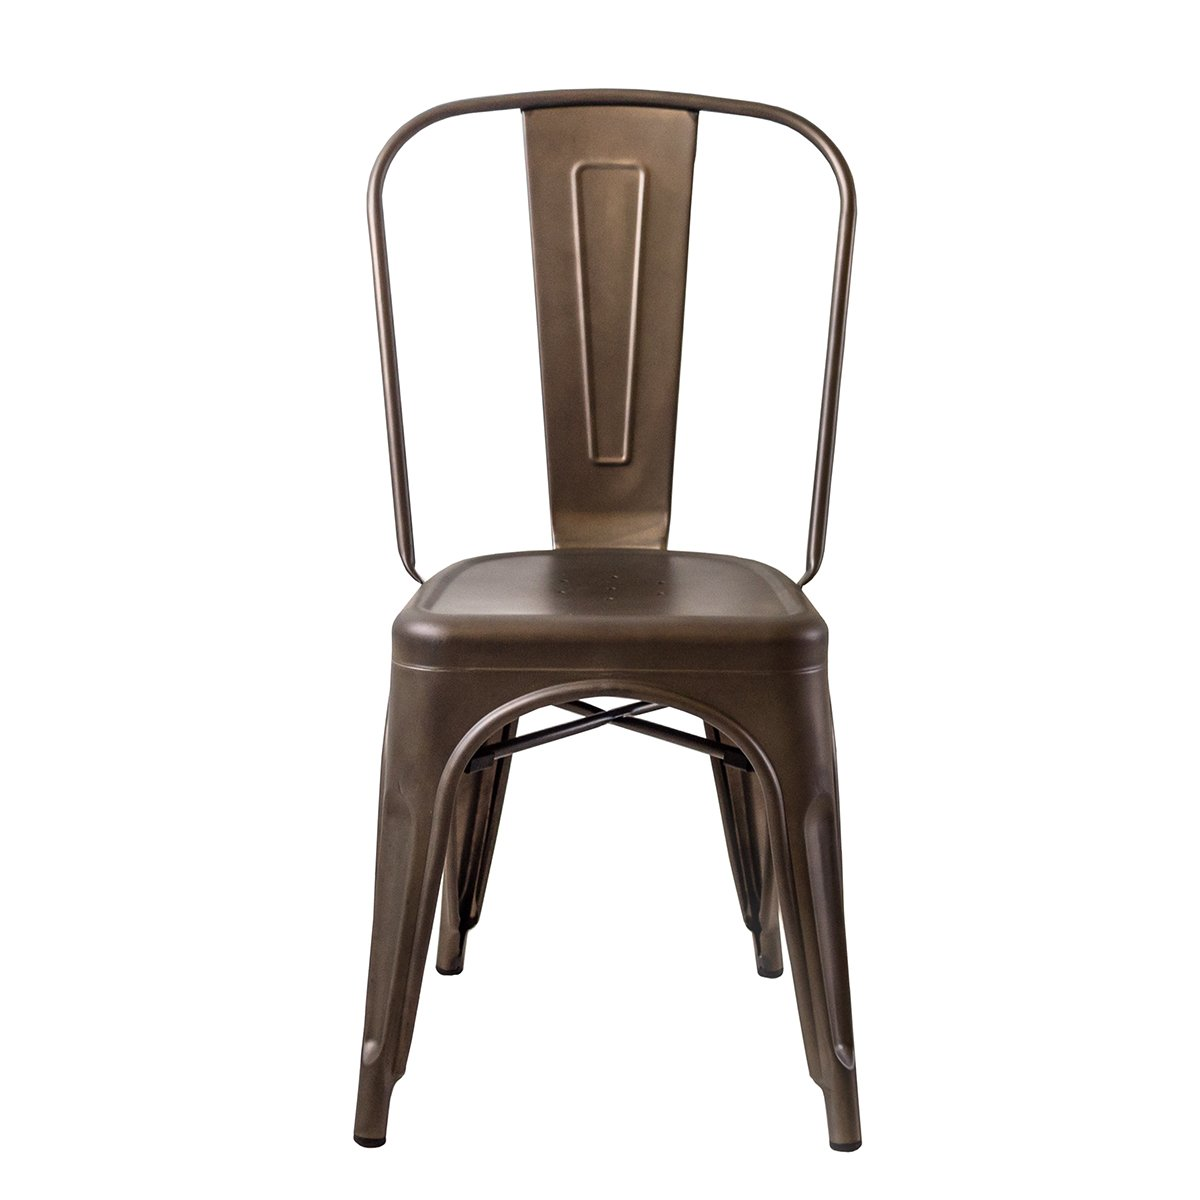 Amazon.com - Buschman Set of Four Bronze Tolix-Style Metal Indoor/Outdoor Stackable Chairs with Back - Chairs  sc 1 st  Amazon.com & Amazon.com - Buschman Set of Four Bronze Tolix-Style Metal Indoor ... islam-shia.org